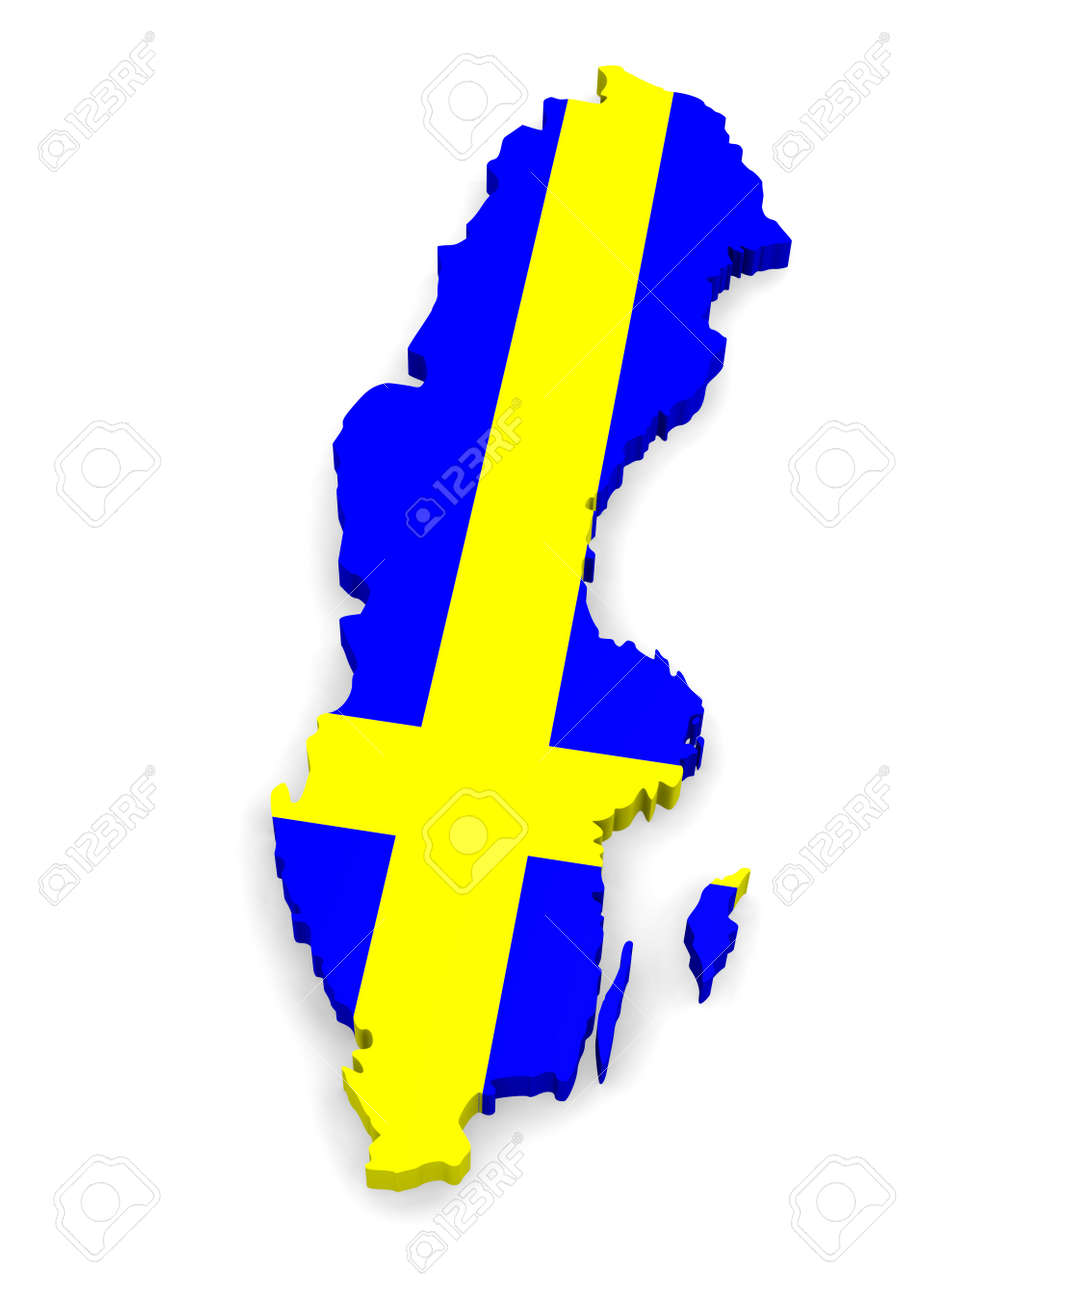 D Map Of Sweden Stock Photo Picture And Royalty Free Image - Sweden map 3d